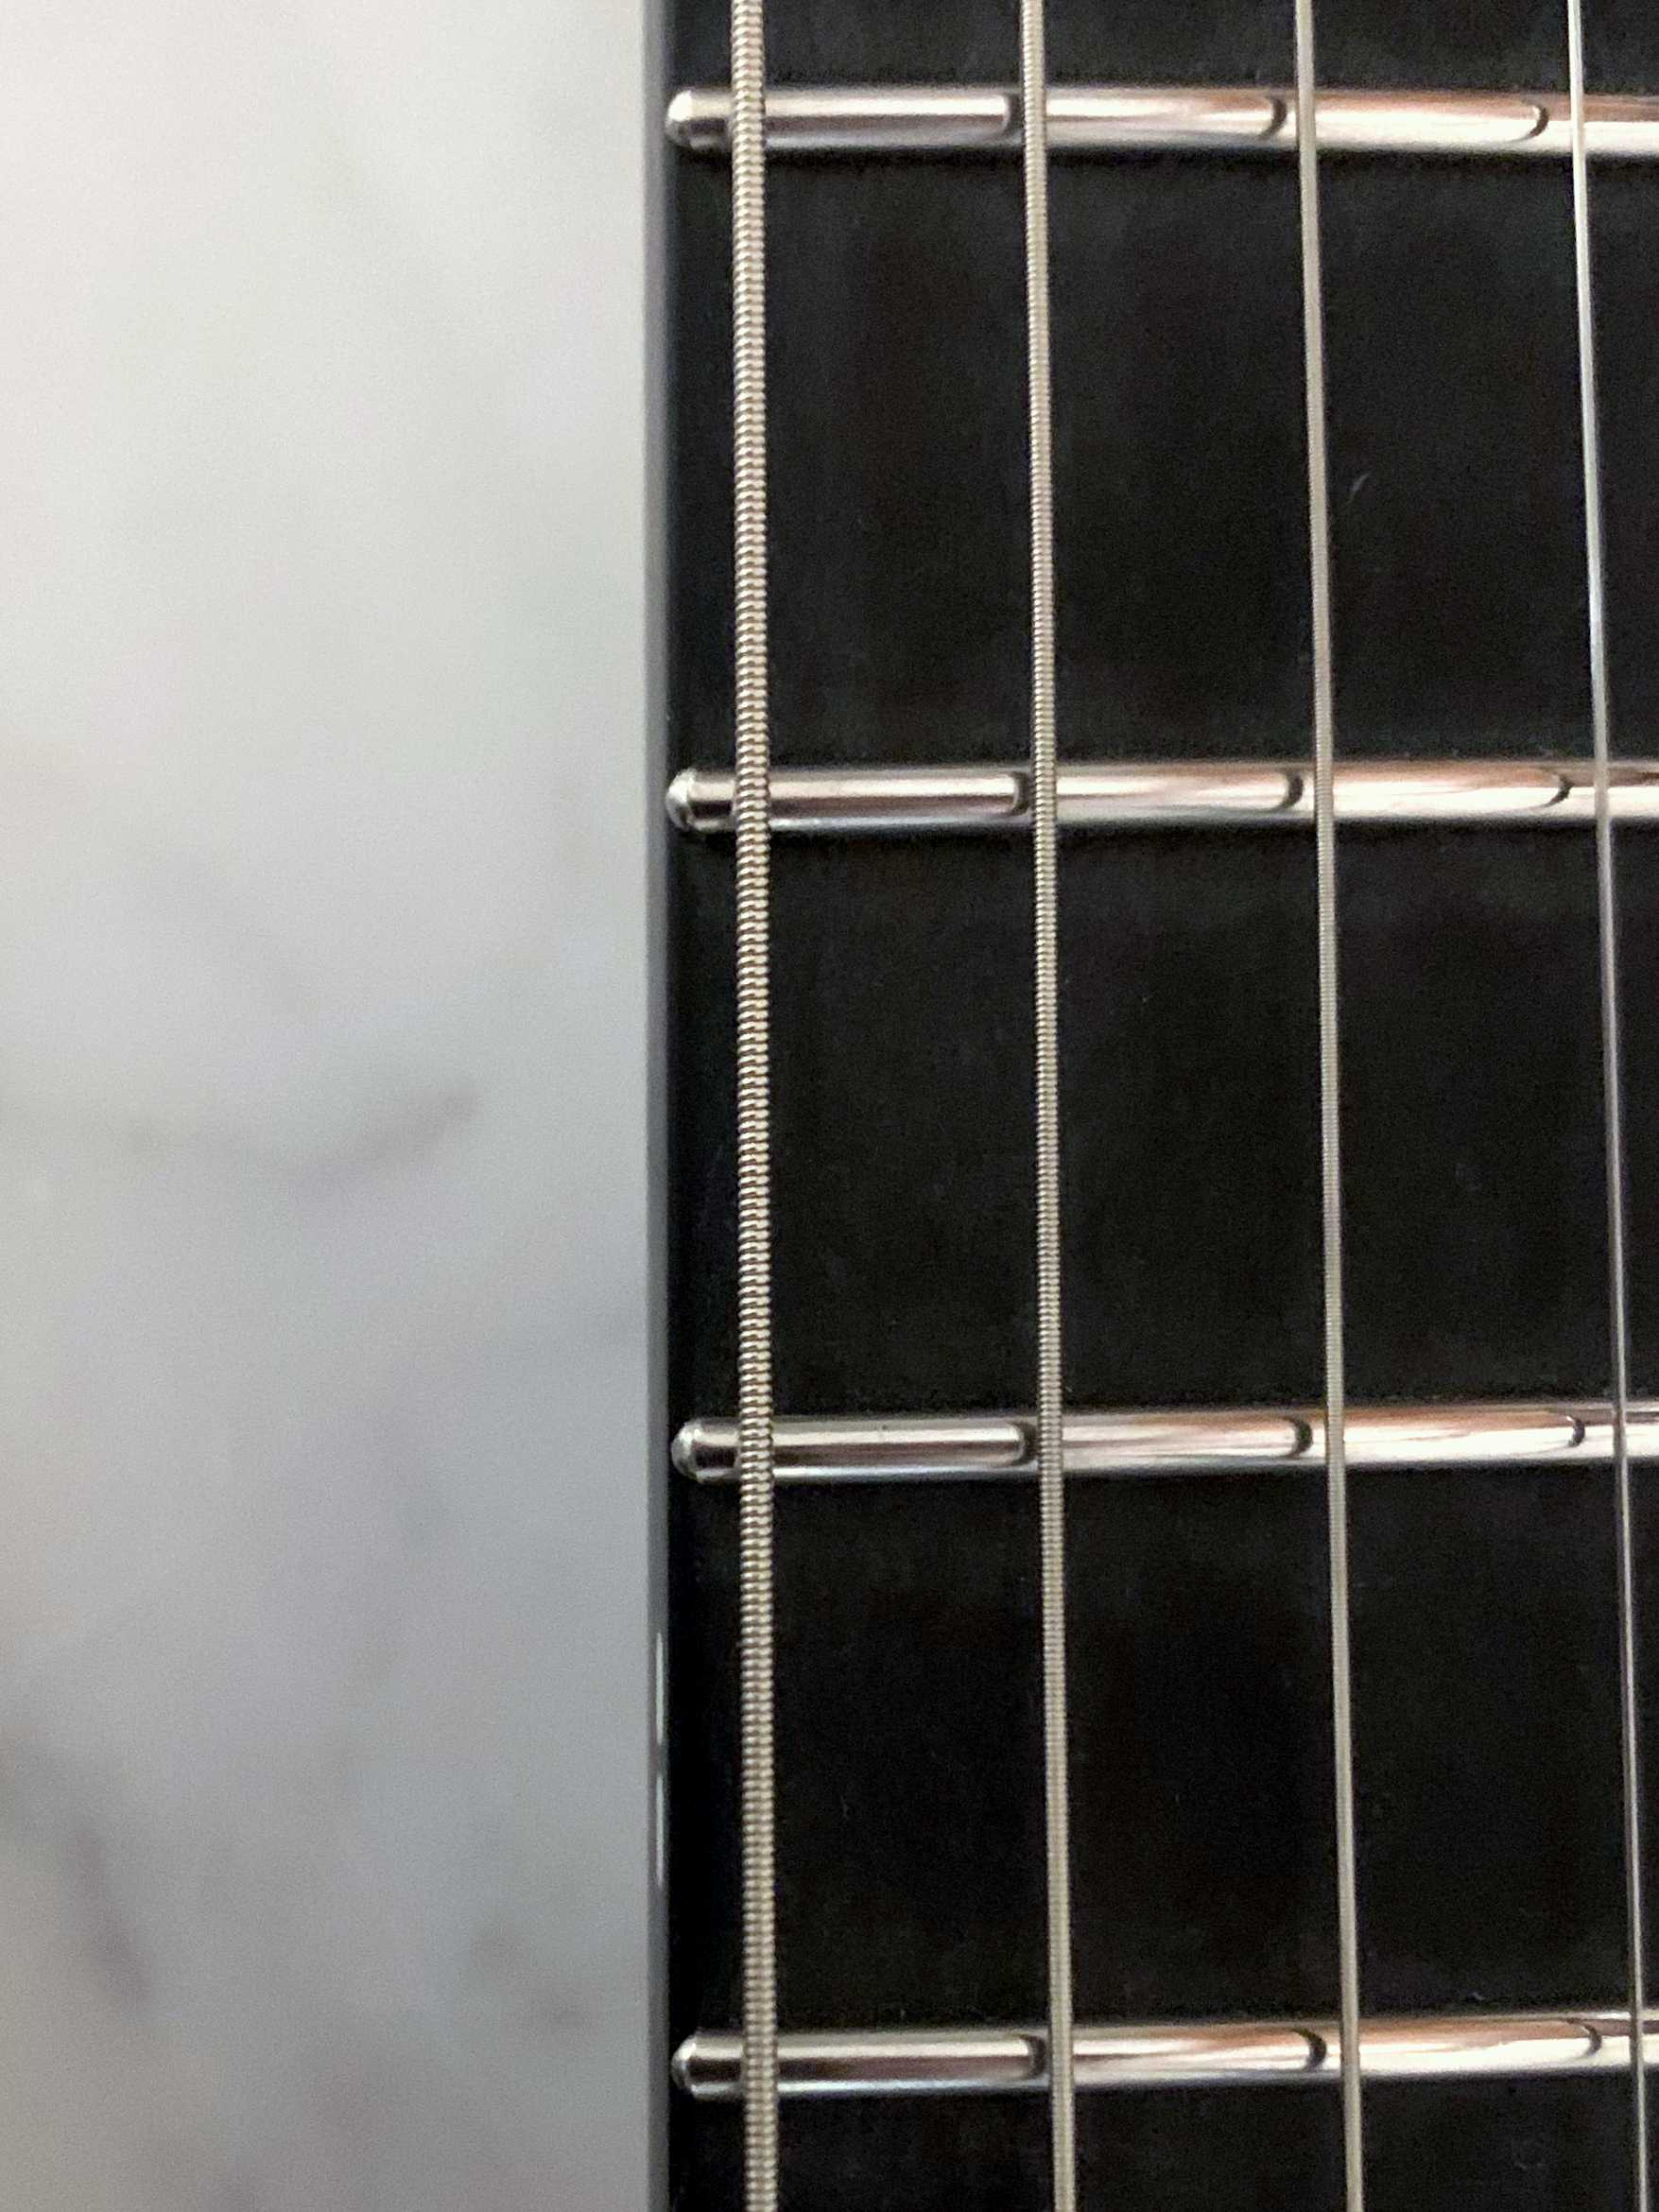 Stainless steel frets with ball ends